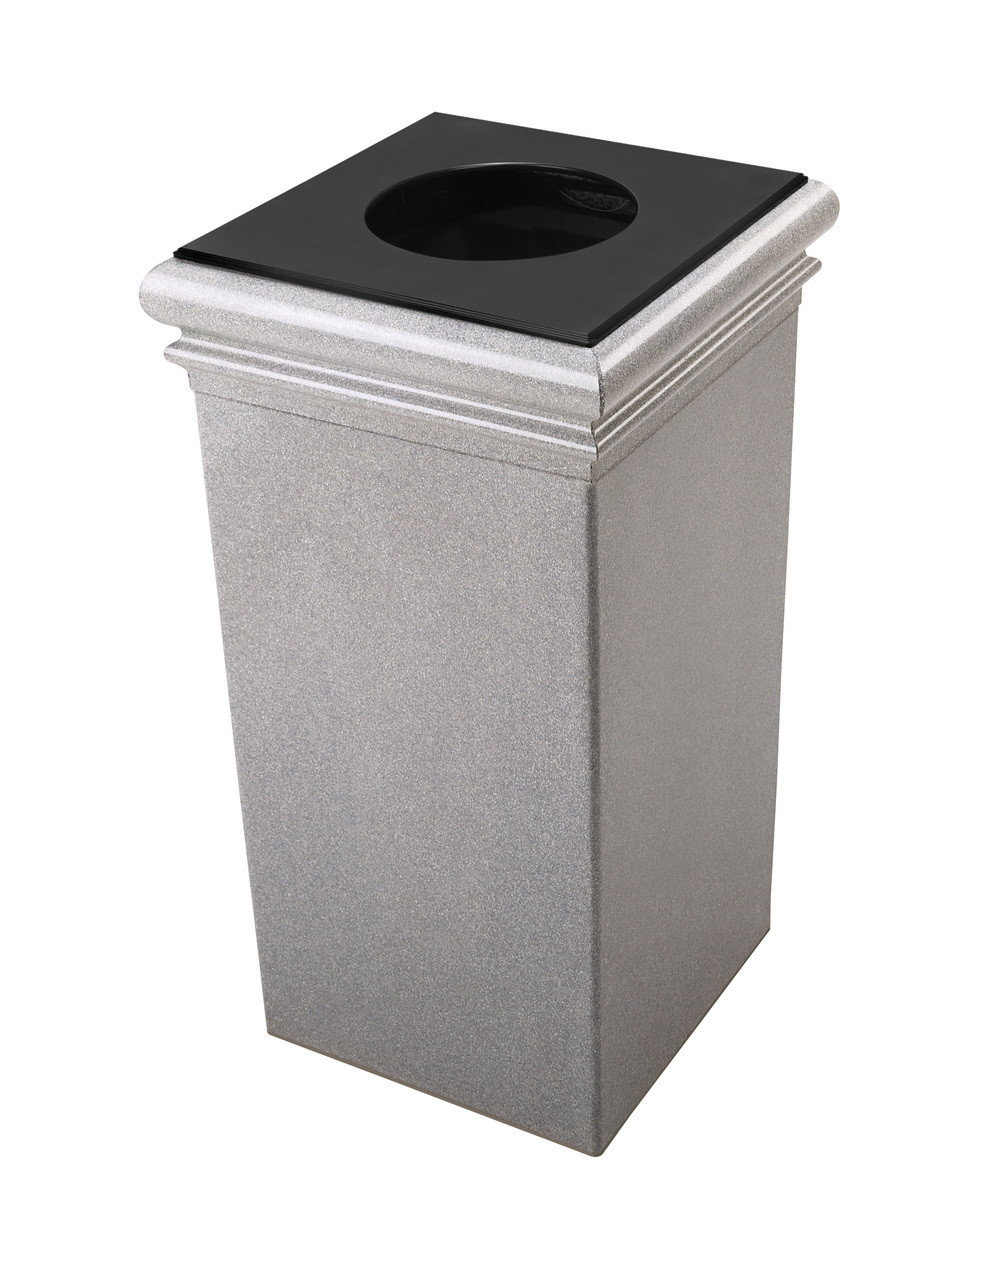 30 Gallon StoneTec Concrete Fiberglass Decorative Trash Can Ashstone